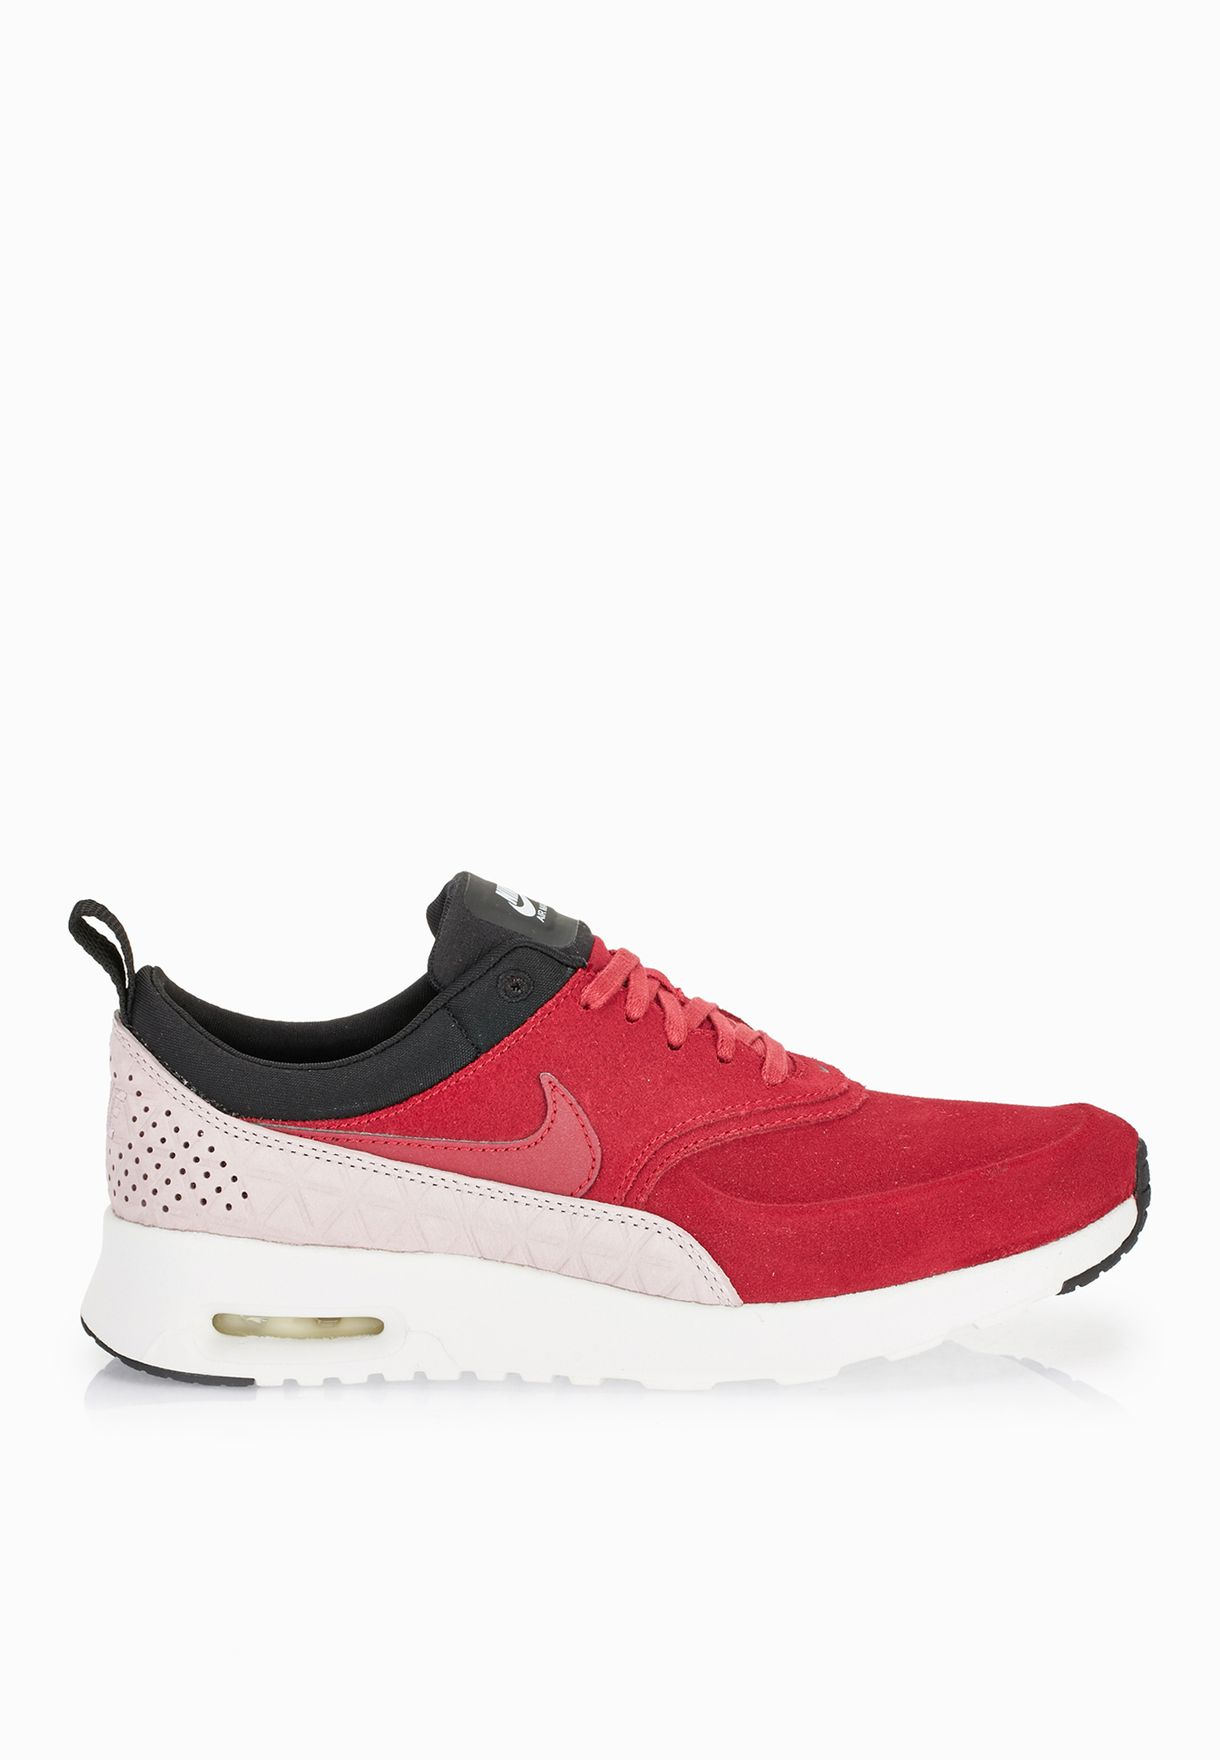 lowest price e474a c6c14 Air Max Thea Prm Lth